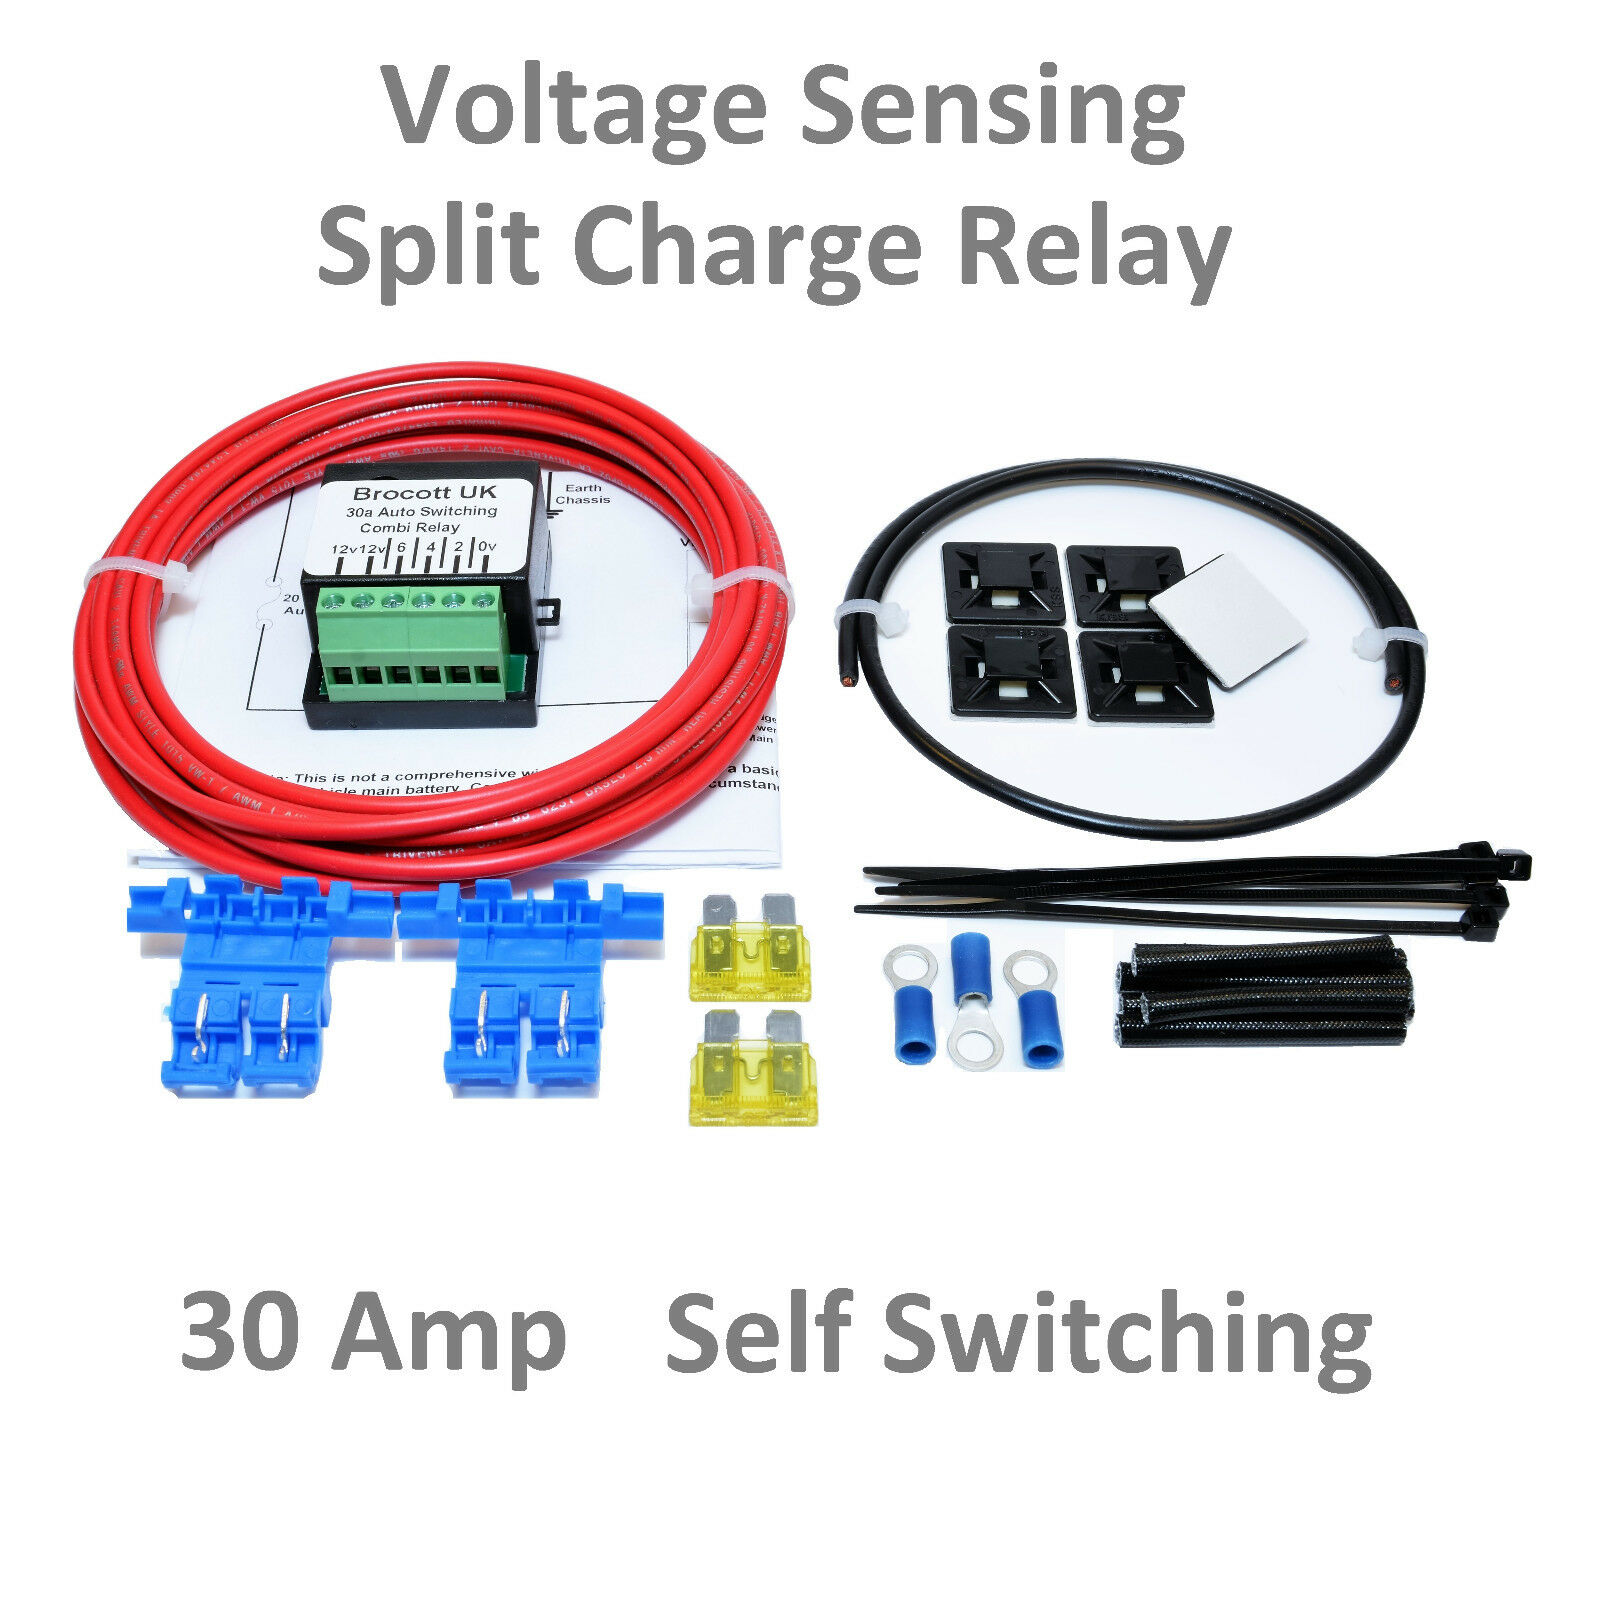 Voltage Sensitive Relay Wiring Motor Home Self Switching Sensing Split Charge Kit Rescontentglobalinflowinflowcomponenttechnicalissues